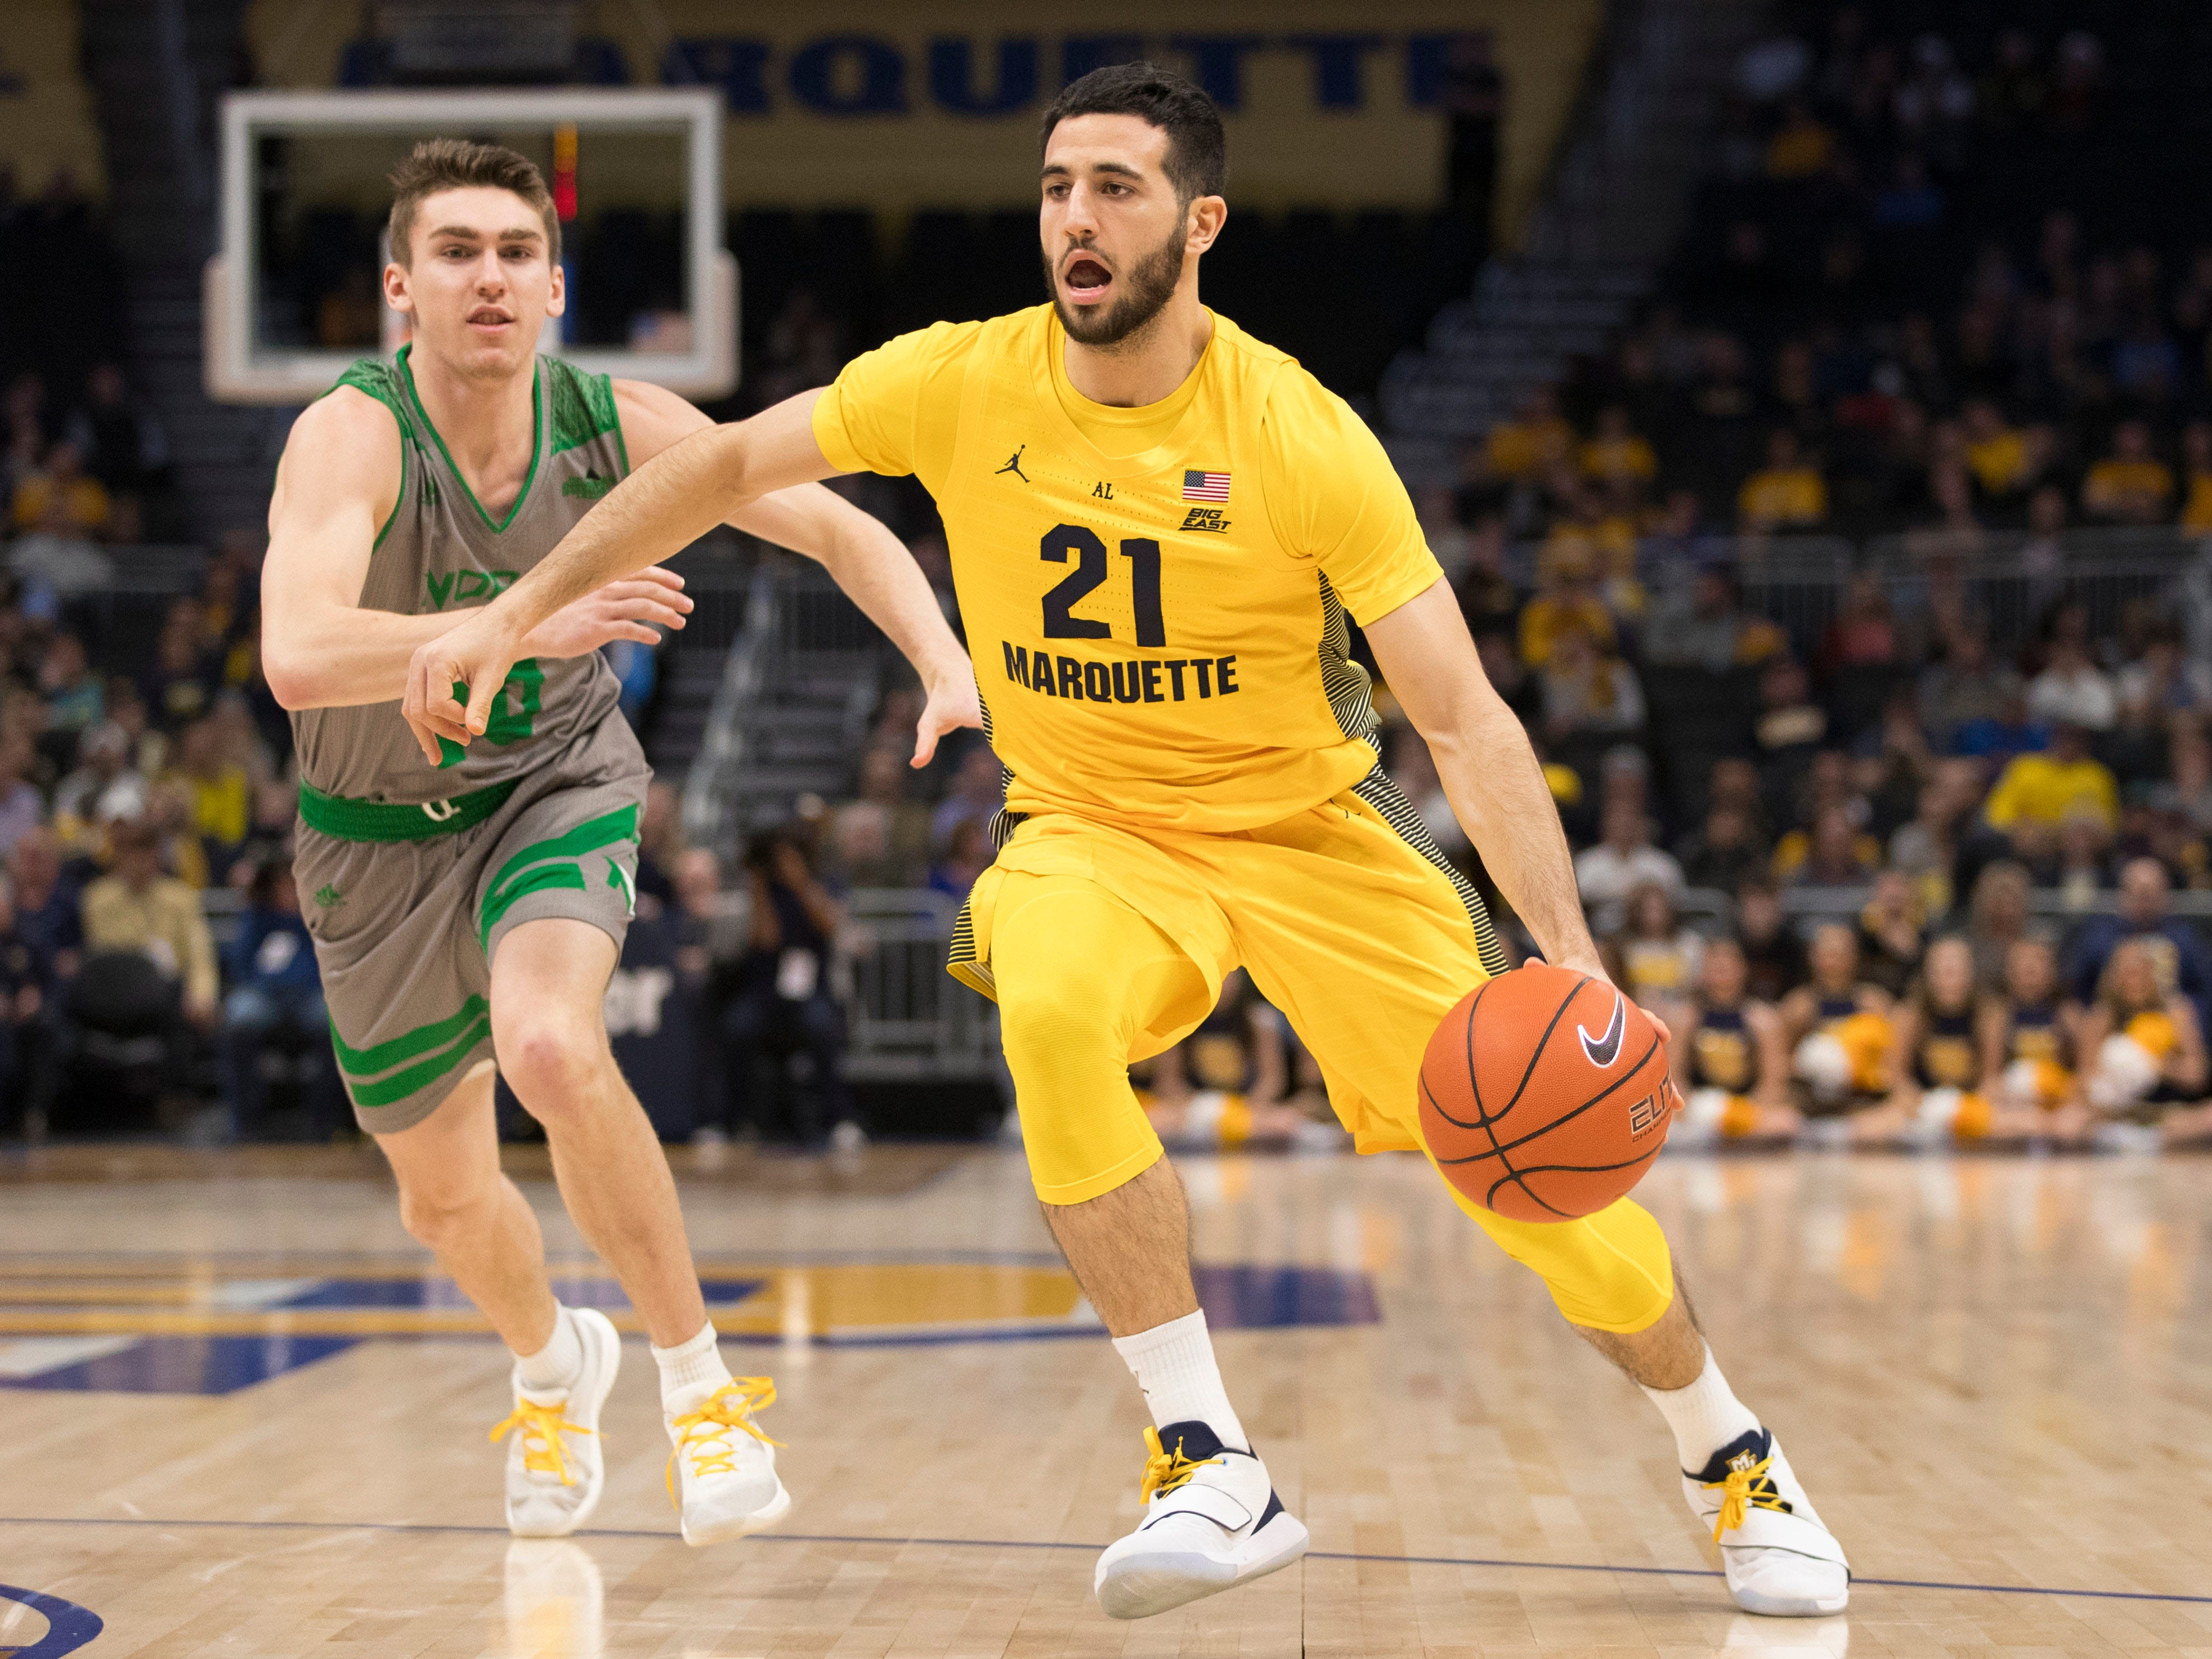 Marquette guard Joseph Chartouny  drives to the basket during the first half against the Fighting Hawks on Tuesday night.